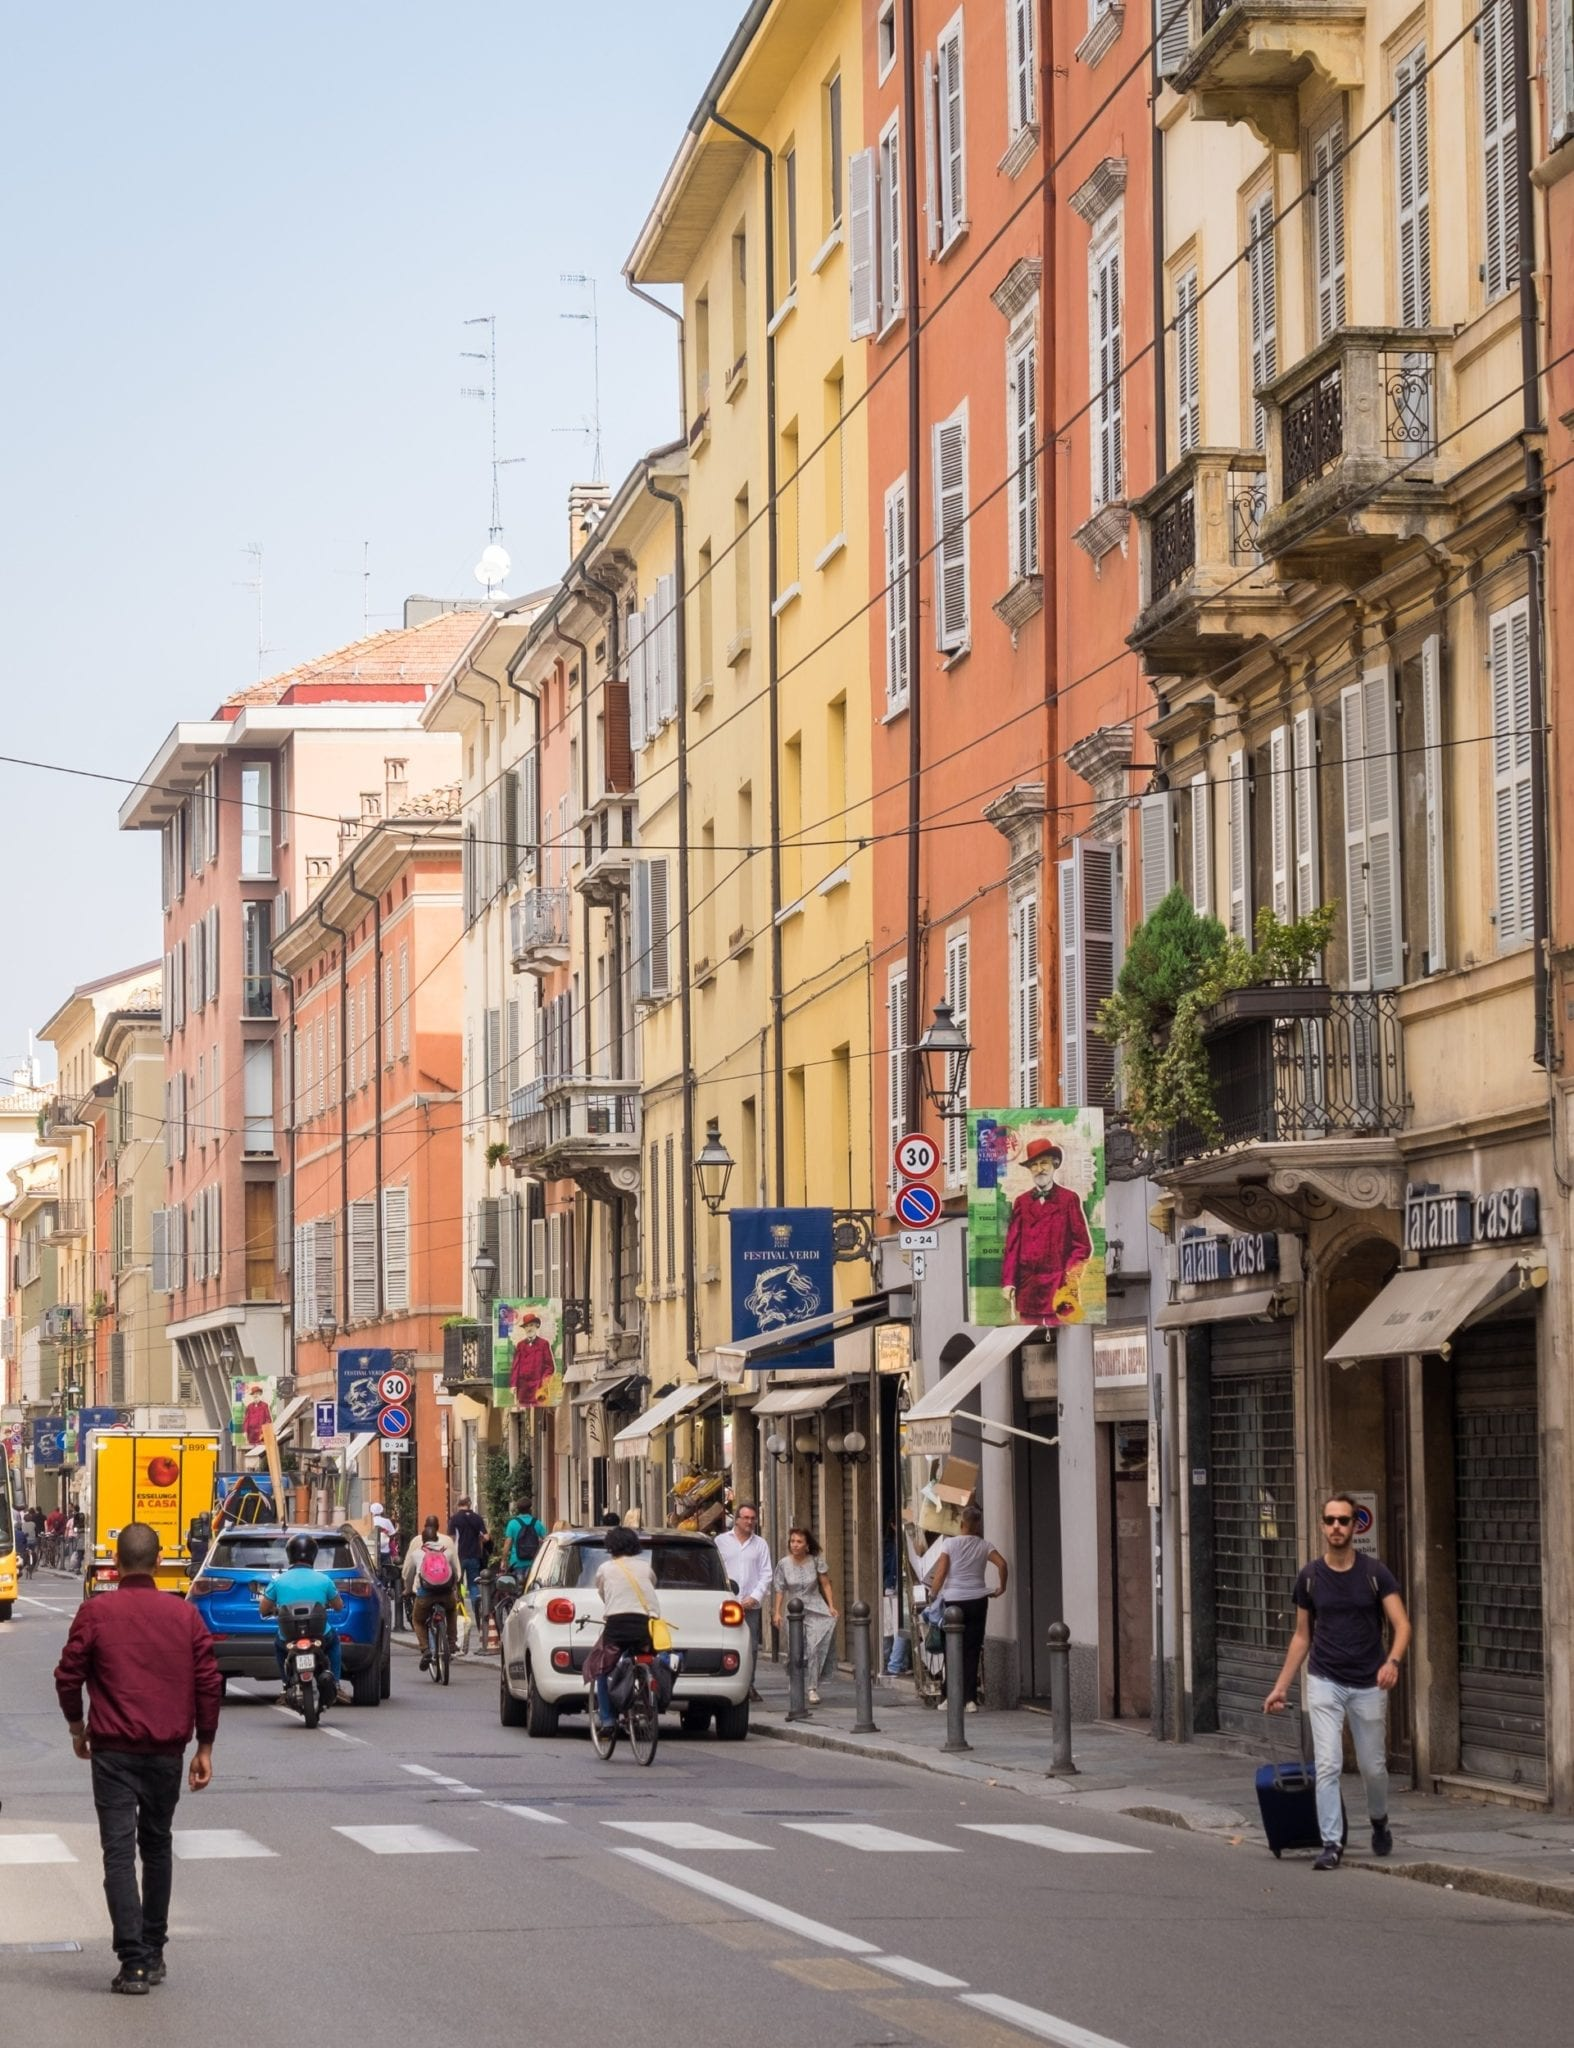 People walking down the streets surrounded by warm-colored buildings in Parma, Italy.